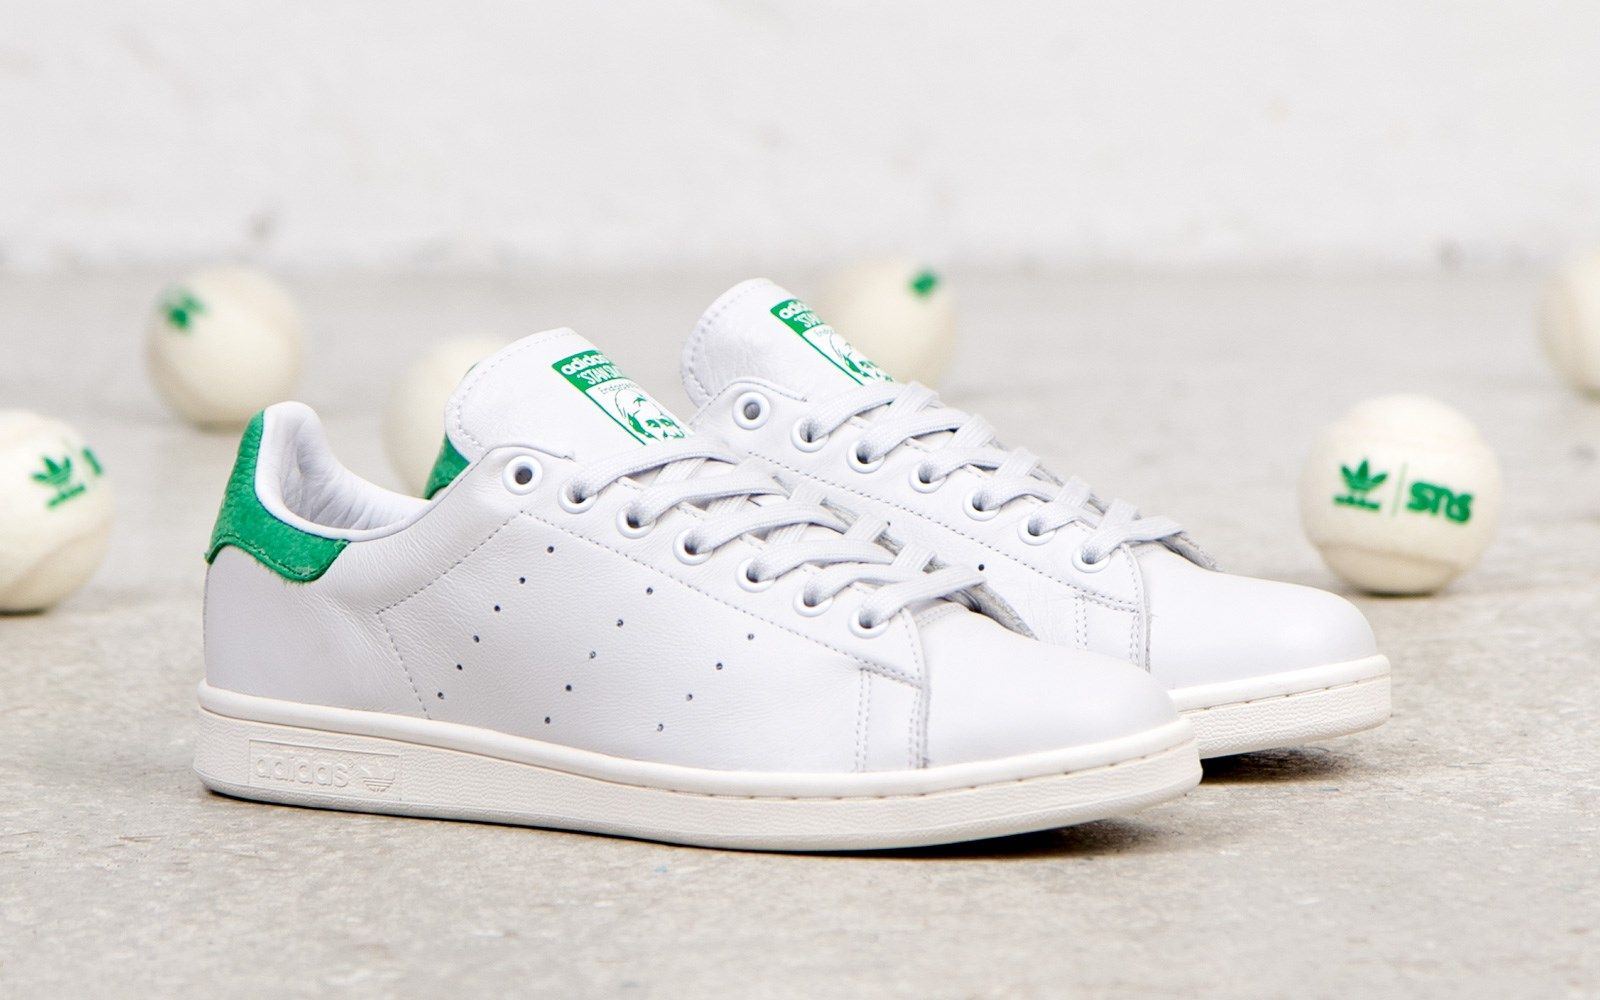 huge selection of 07c1c 22088 The American tennis icon, Stan Smith began wearing the world ...